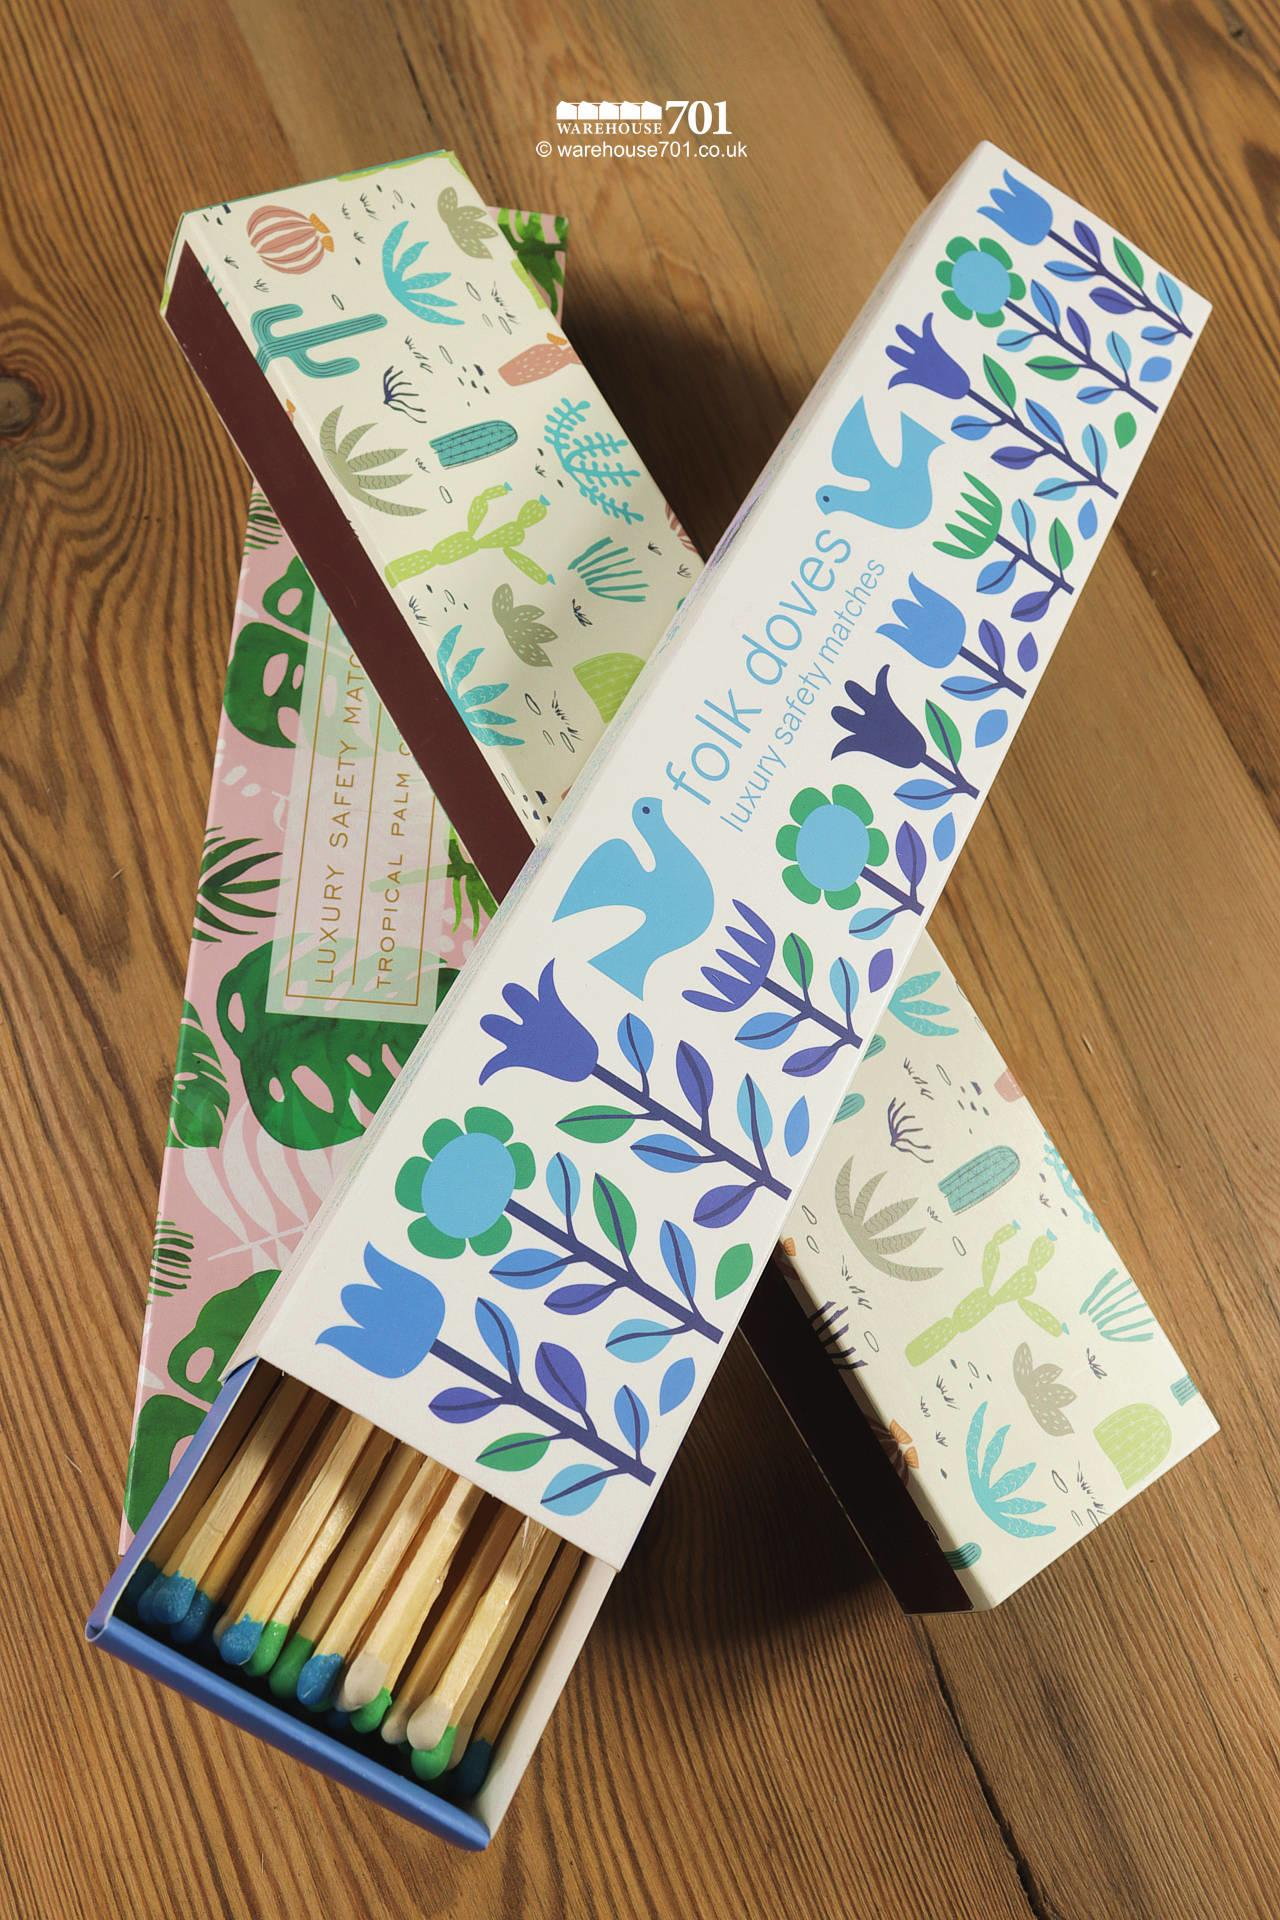 Decorative Boxes of Very Long Matches